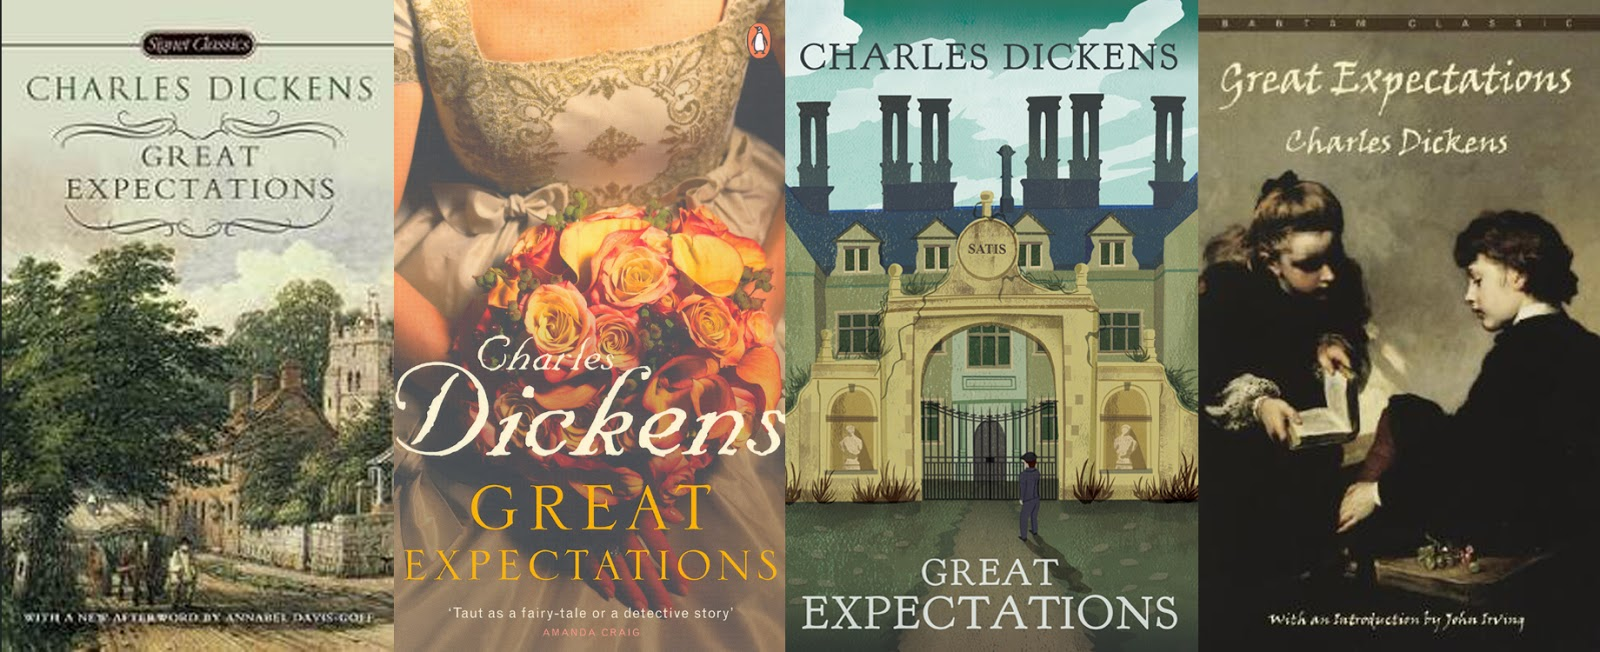 charles dickens lay out his heart in his novel great expectations Dickens's next novel, great expectations  lay suffering this unknown punishment in his silent cell, and i the cause, or i consenting to it in the least degree .